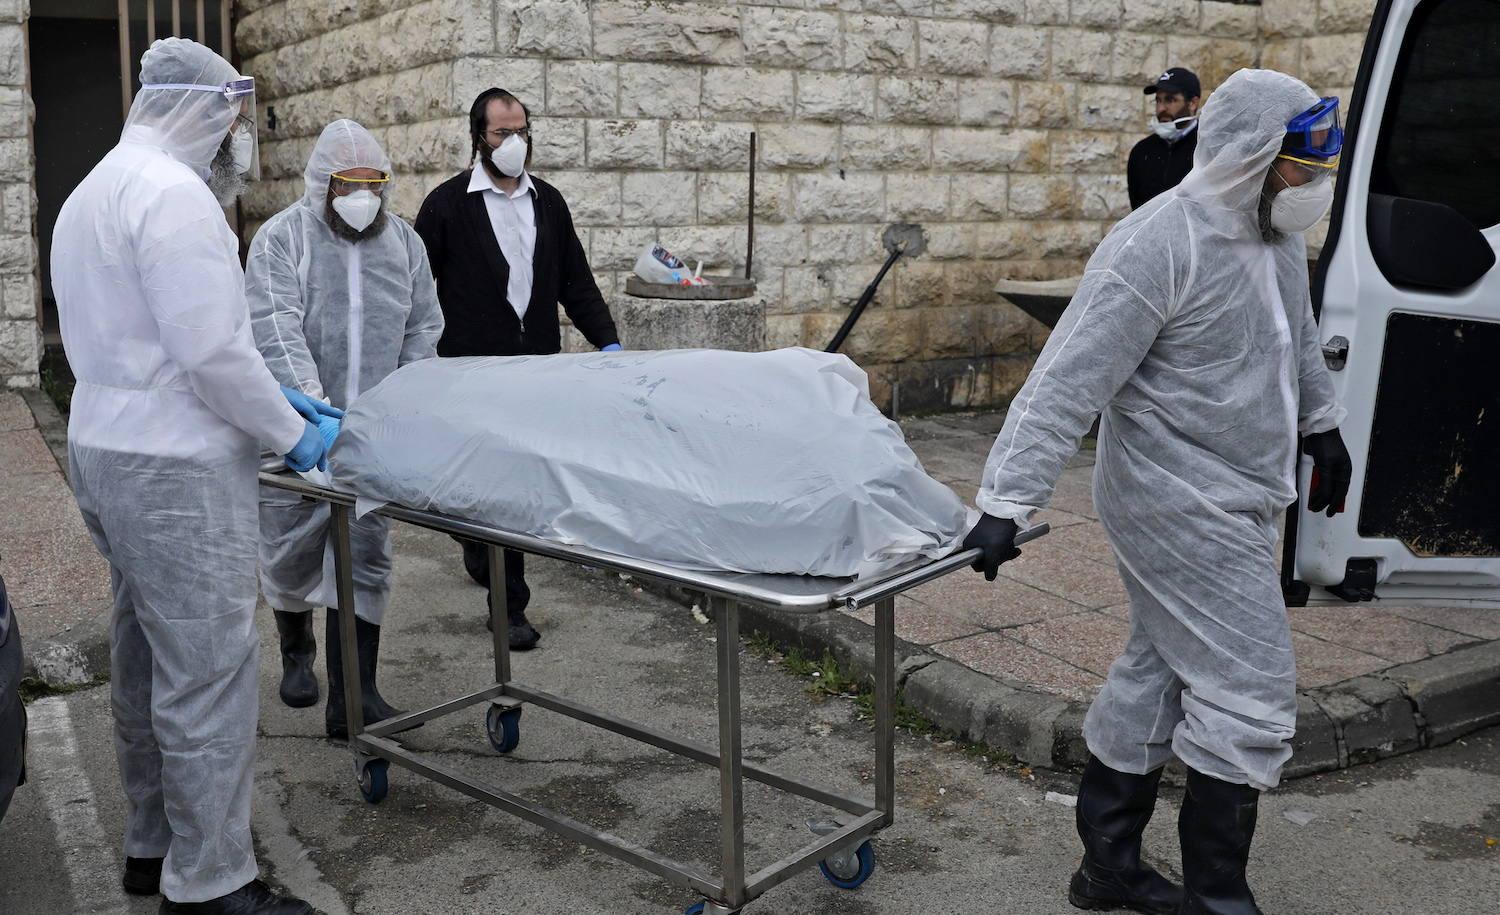 Israeli workers transporting the body of a patient who died from complications of coronavirus in Jerusalem on April 1, 2020. AHMAD GHARABLI/AFP via Getty Images.